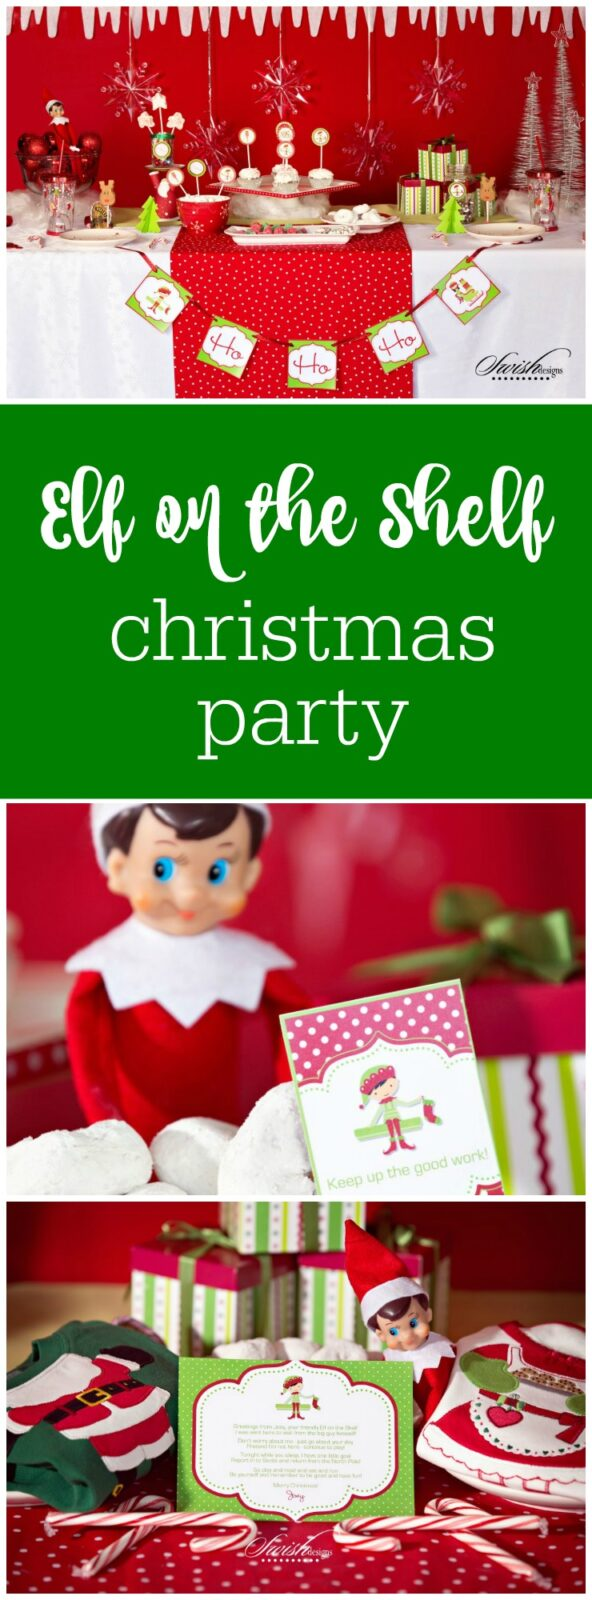 Elf on the Shelf Christmas Party by Swish Printables featured on The Party Teacher